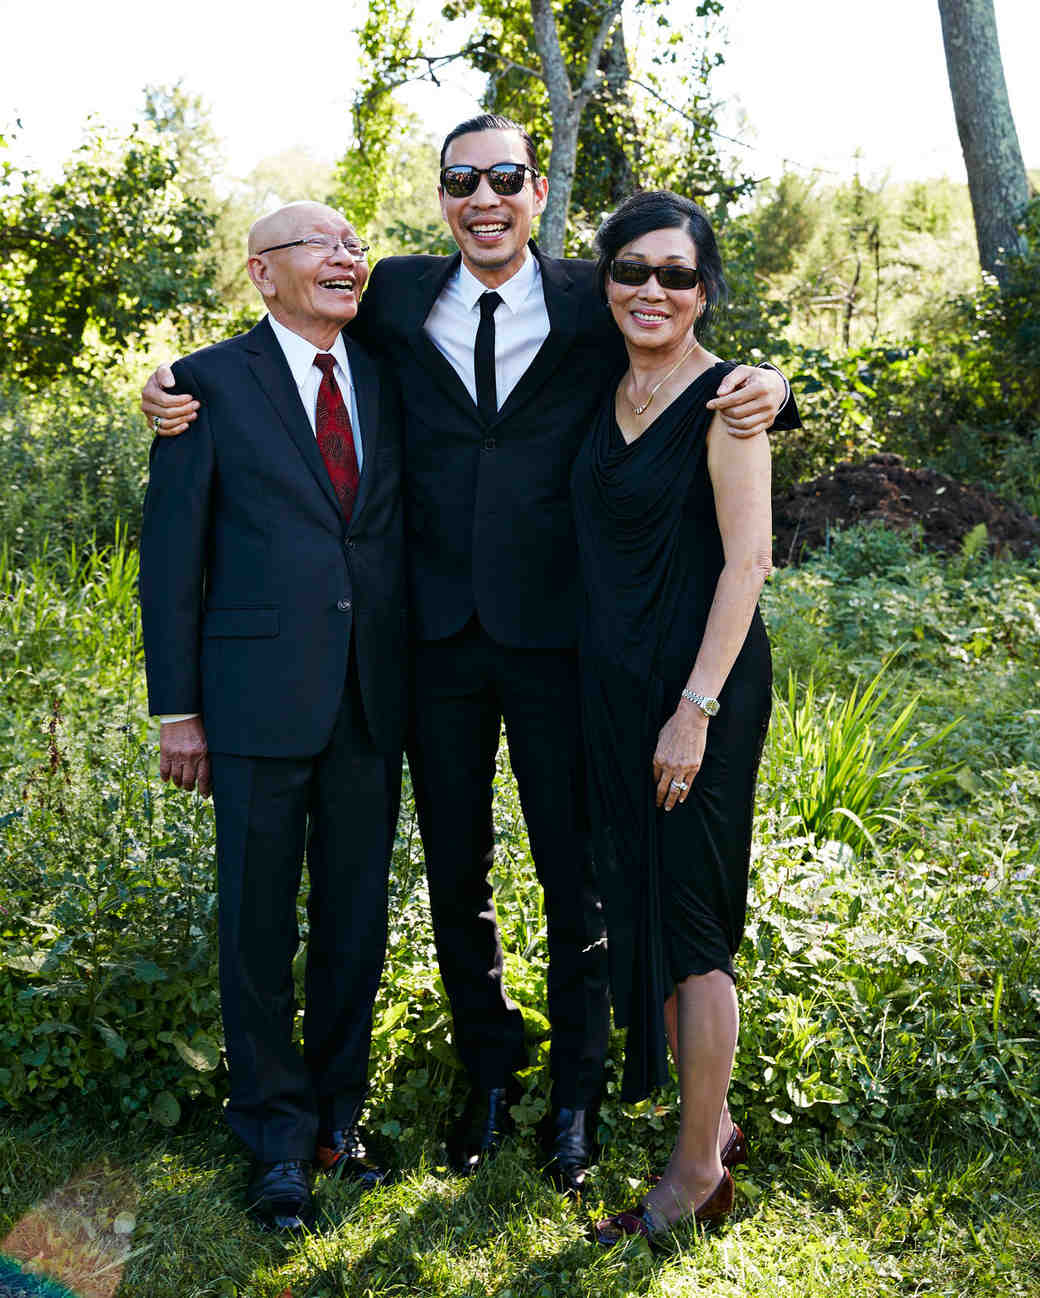 avril quy wedding new york groom family